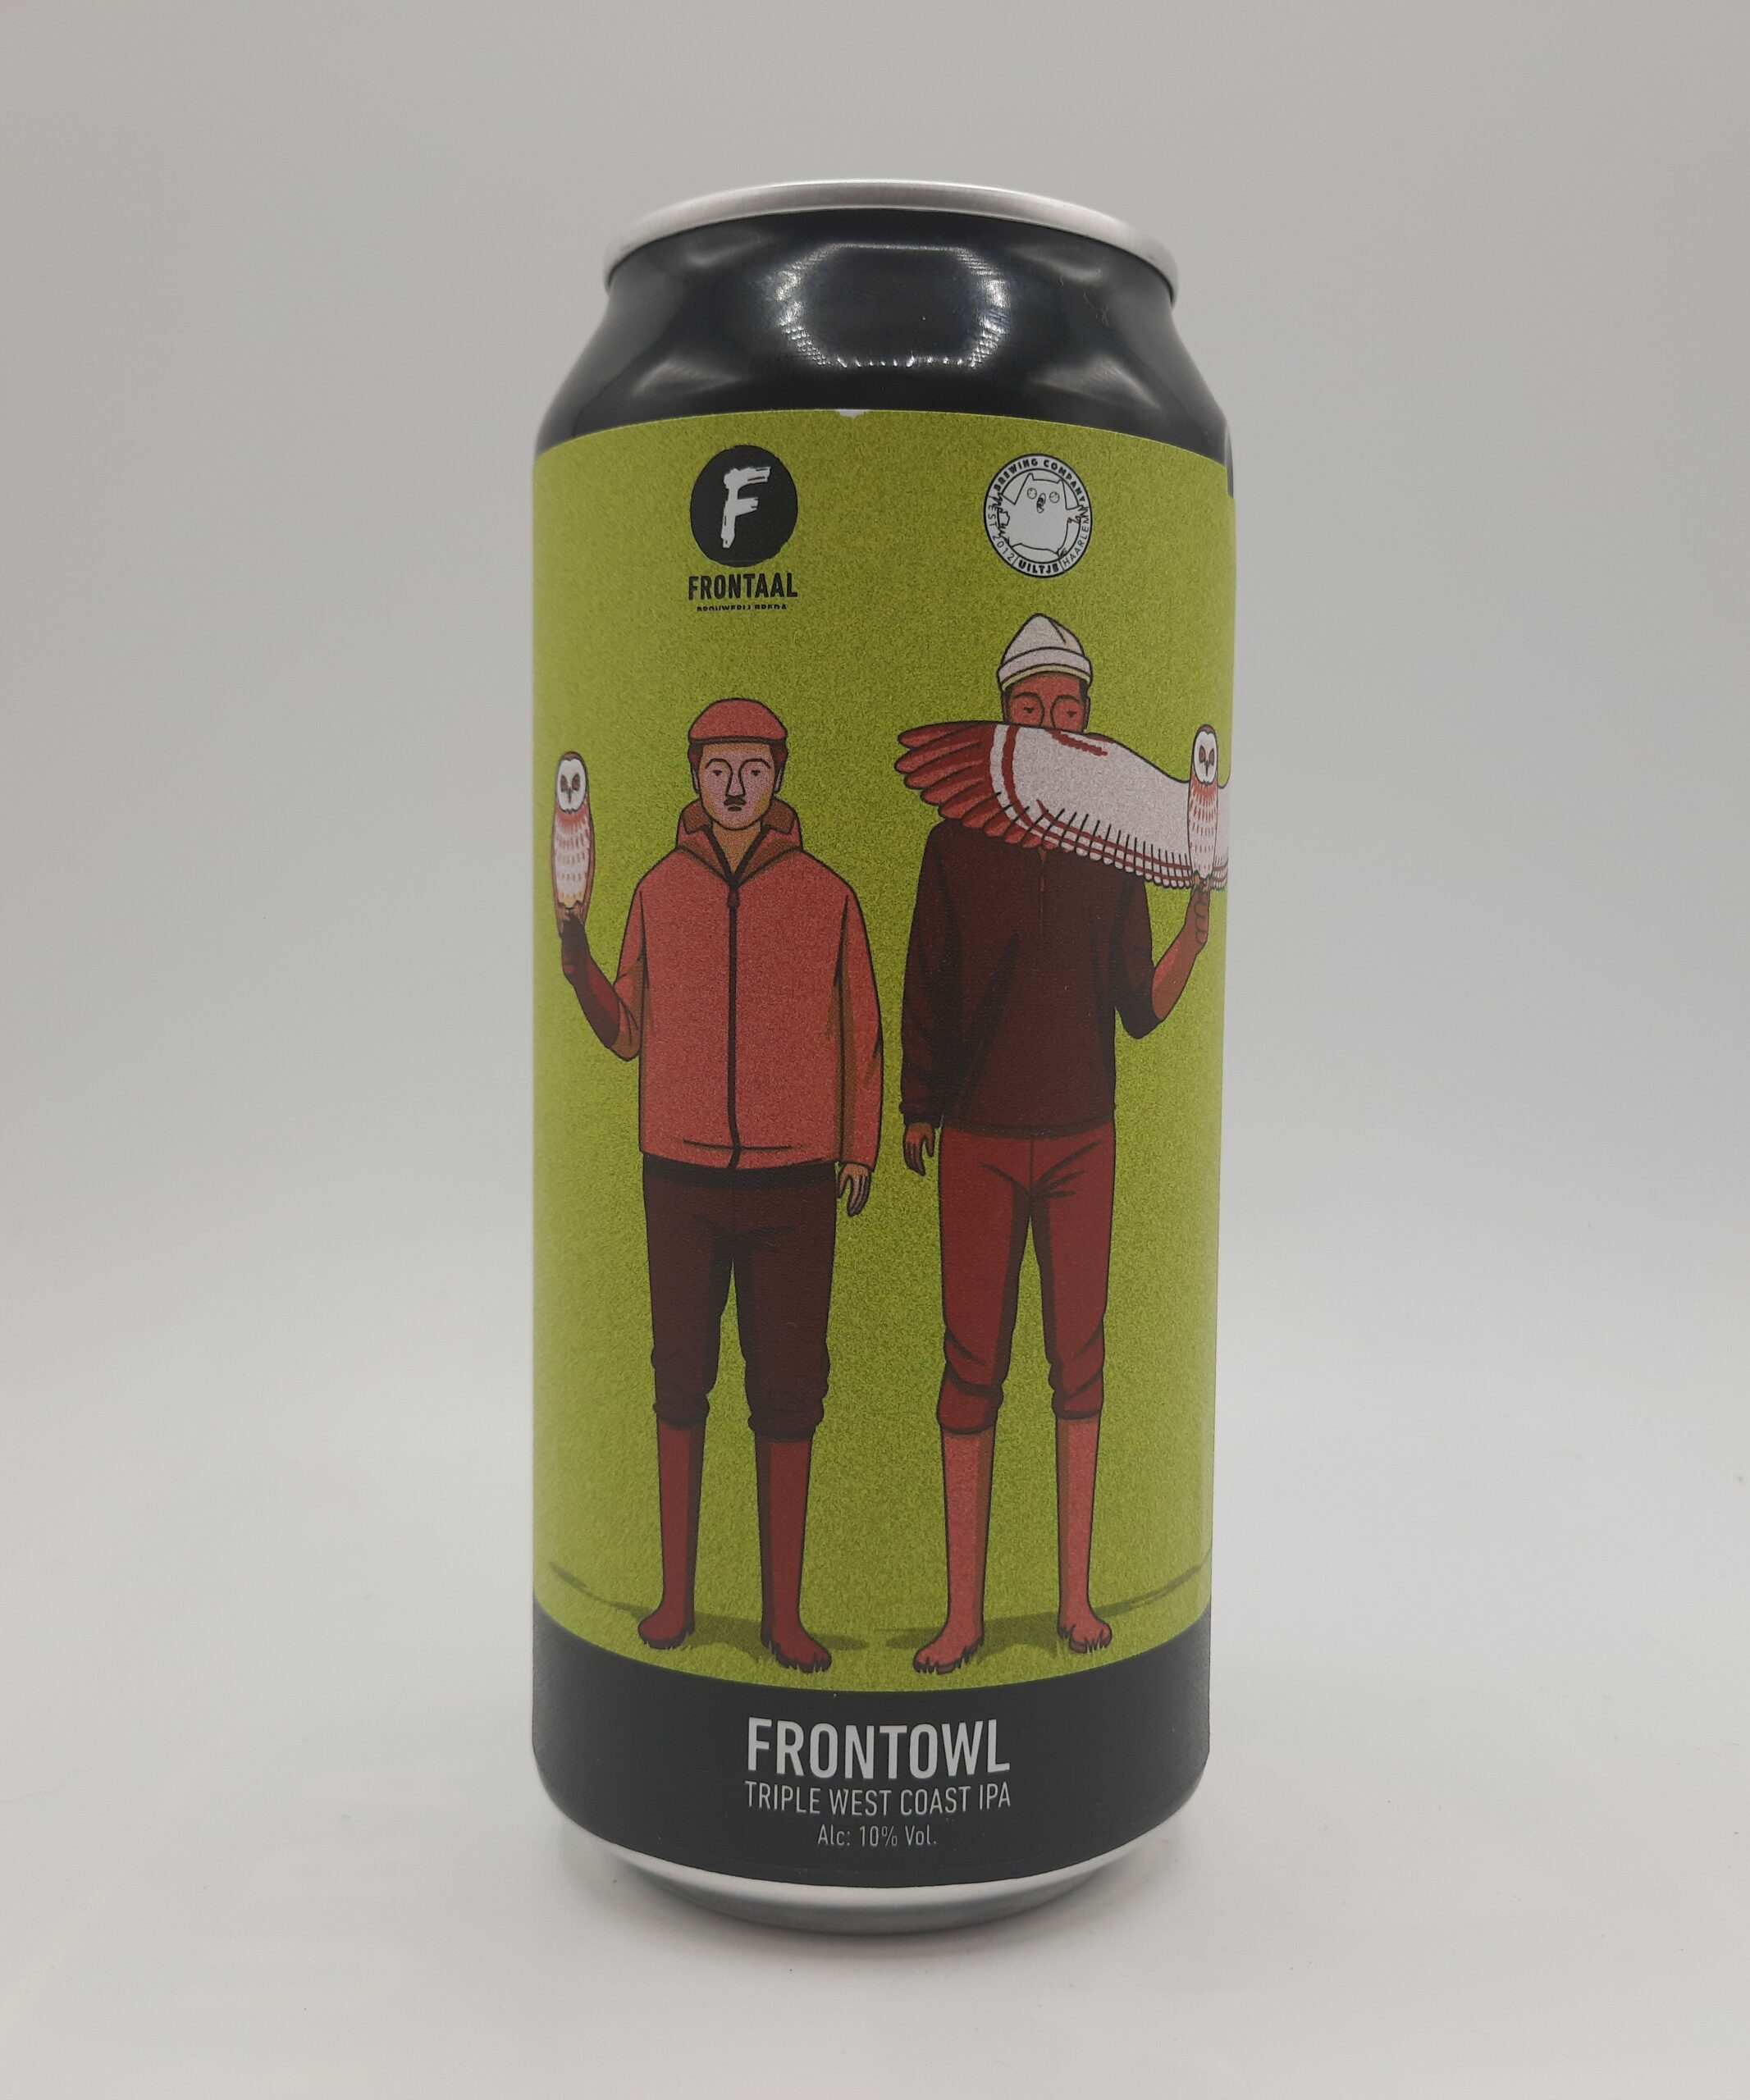 Image Frontowl triple west coast ipa